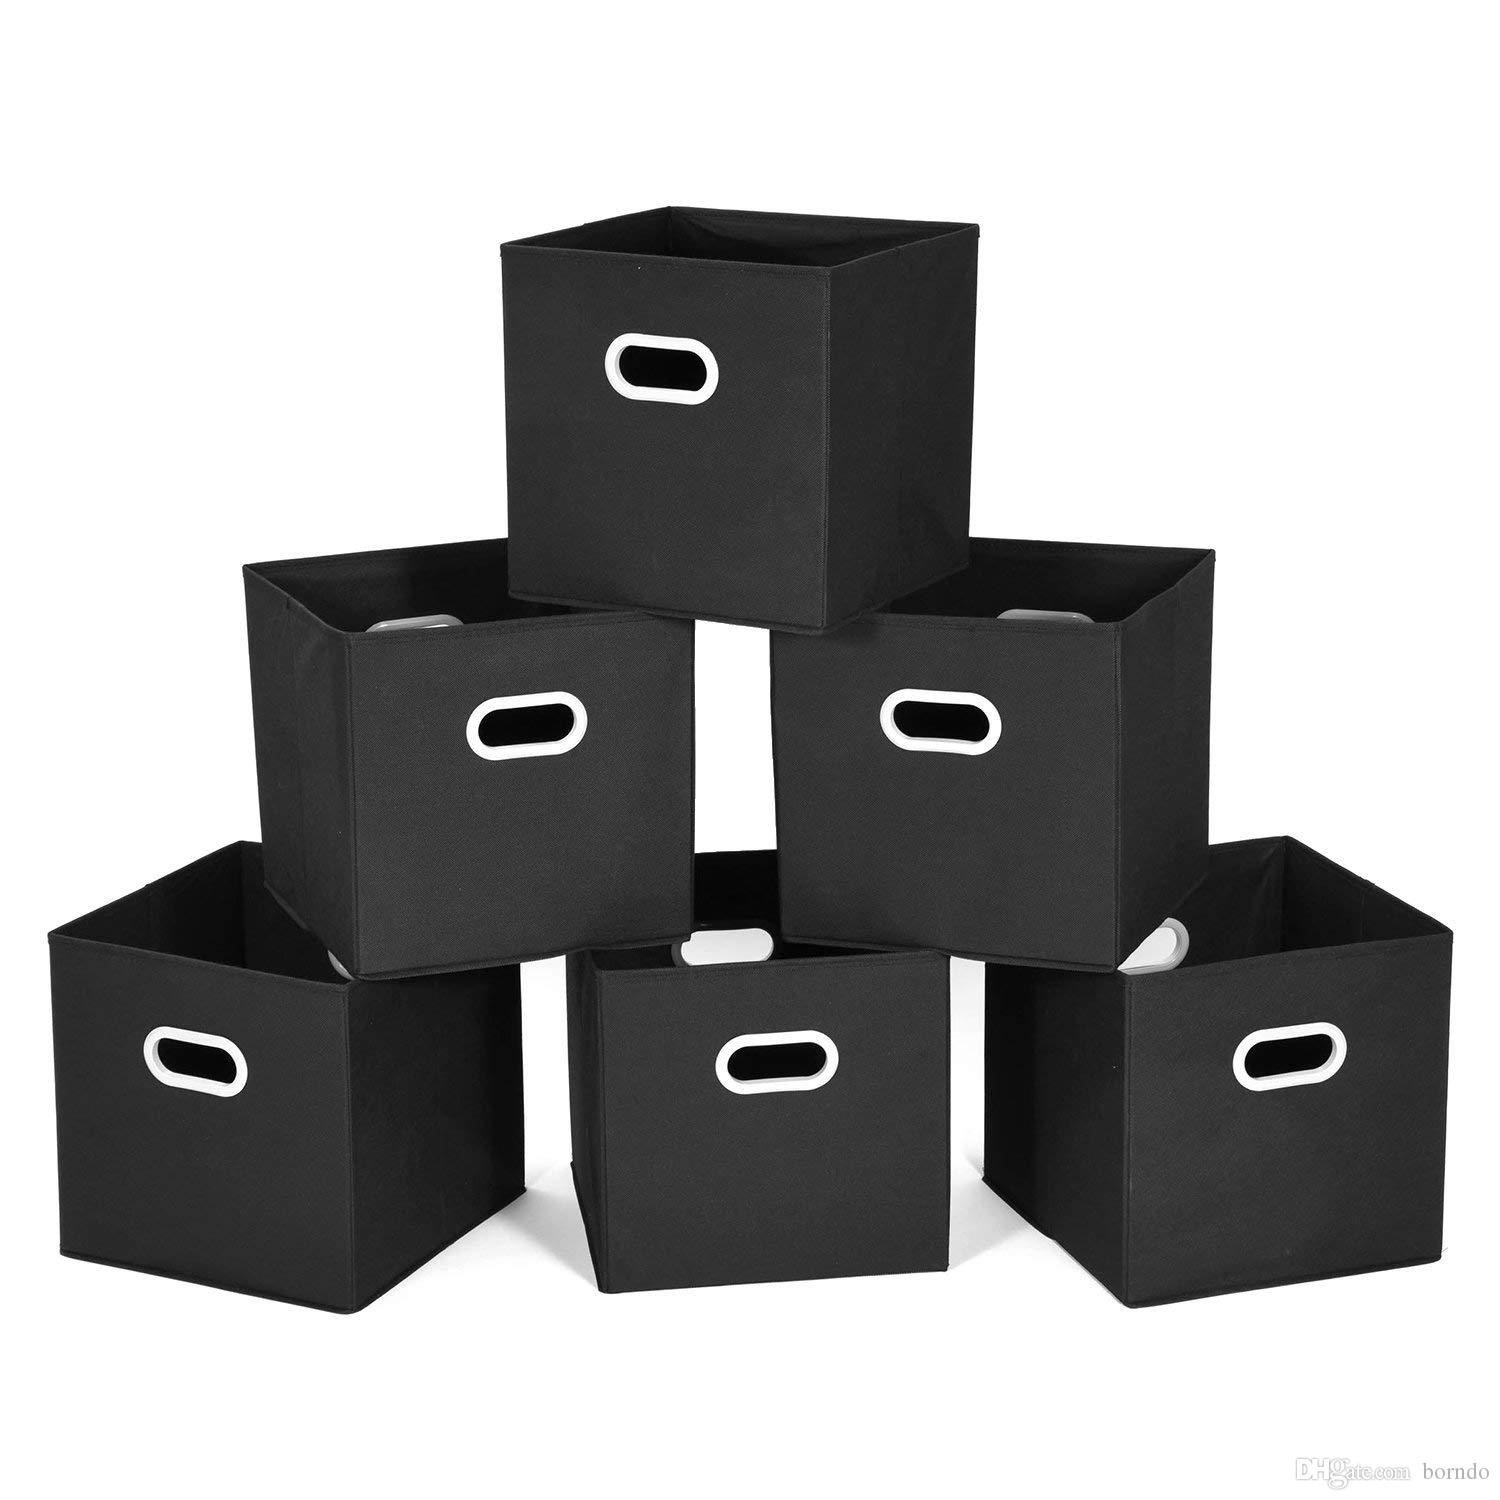 Cloth Storage Bins Cubes Baskets Containers With Dual Plastic Handles For  Home Closet Bedroom Drawers Organizers, Foldable, Black, 11.25 Cloth Storage  Bins ...